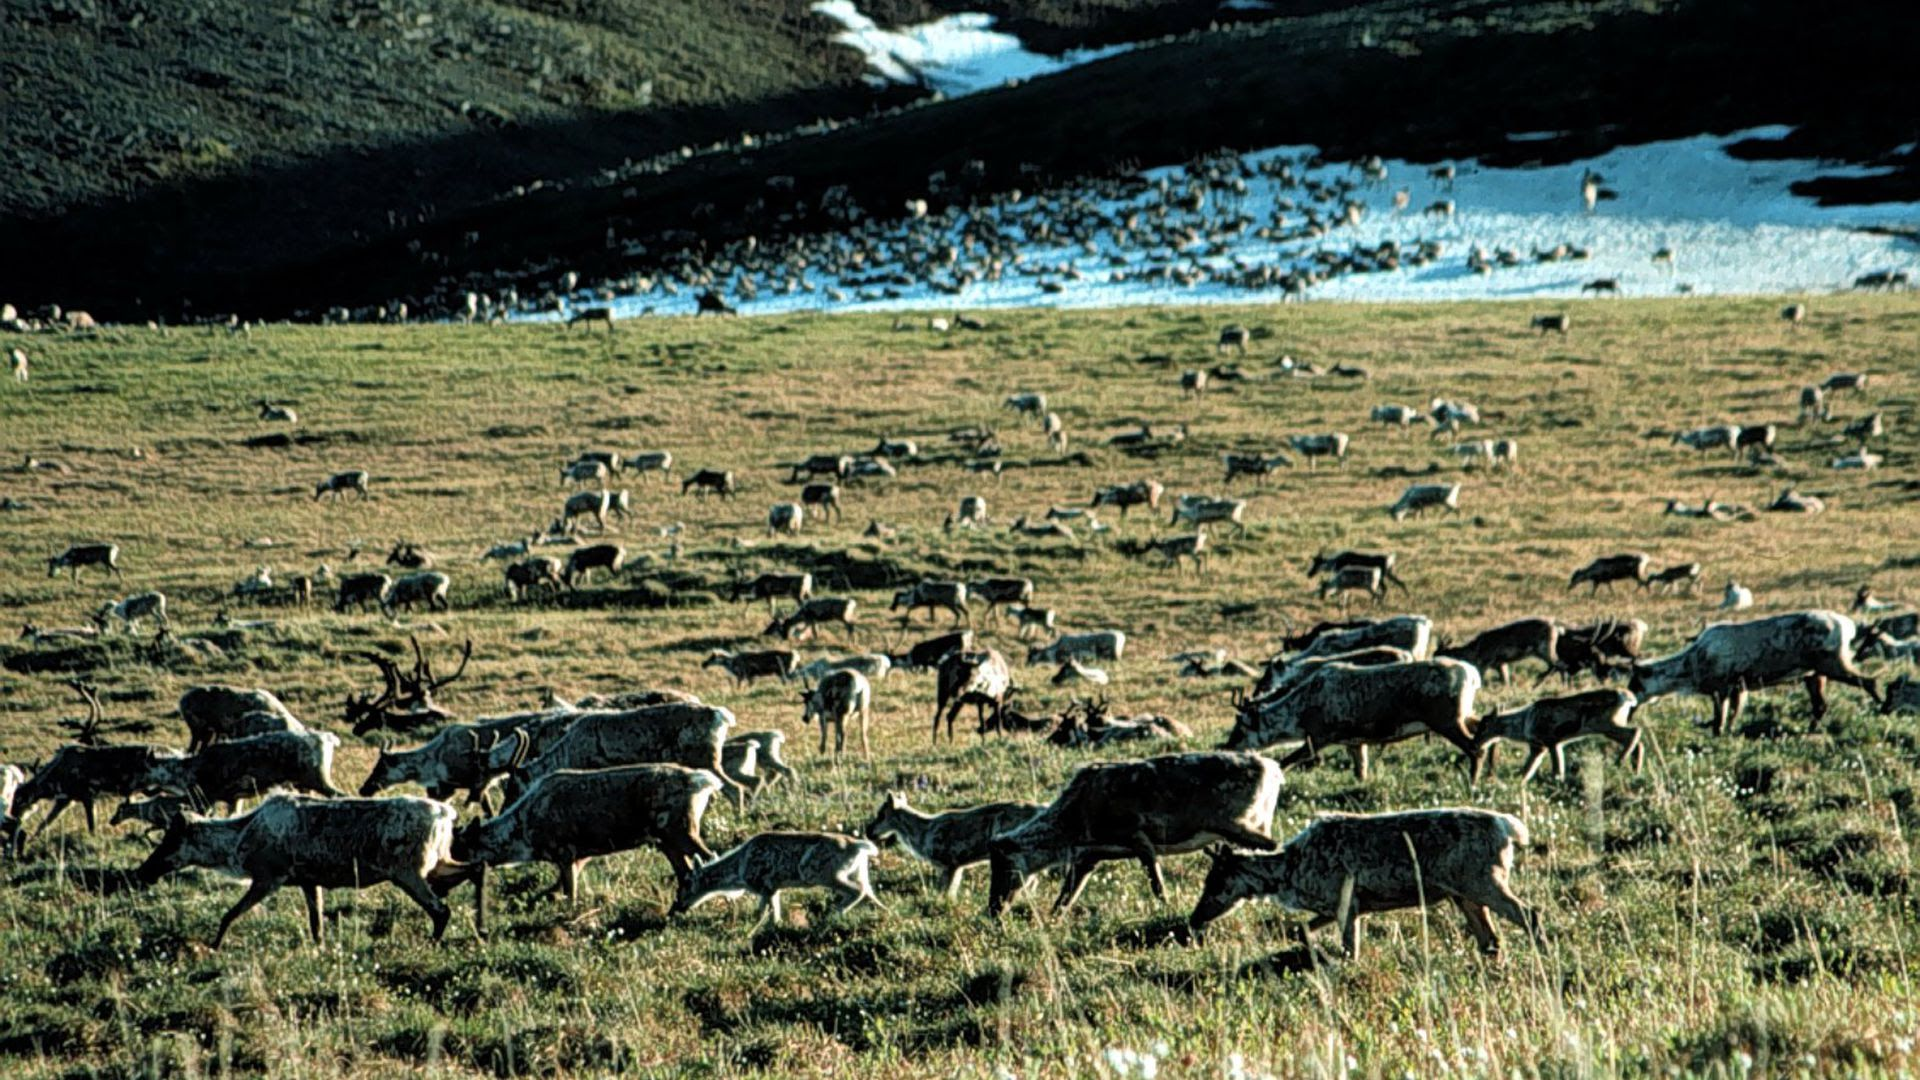 Caribou graze in the Arctic National Wildlife Refuge in Alaska. Photo: U.S. Fish and Wildlife Service / Getty Images